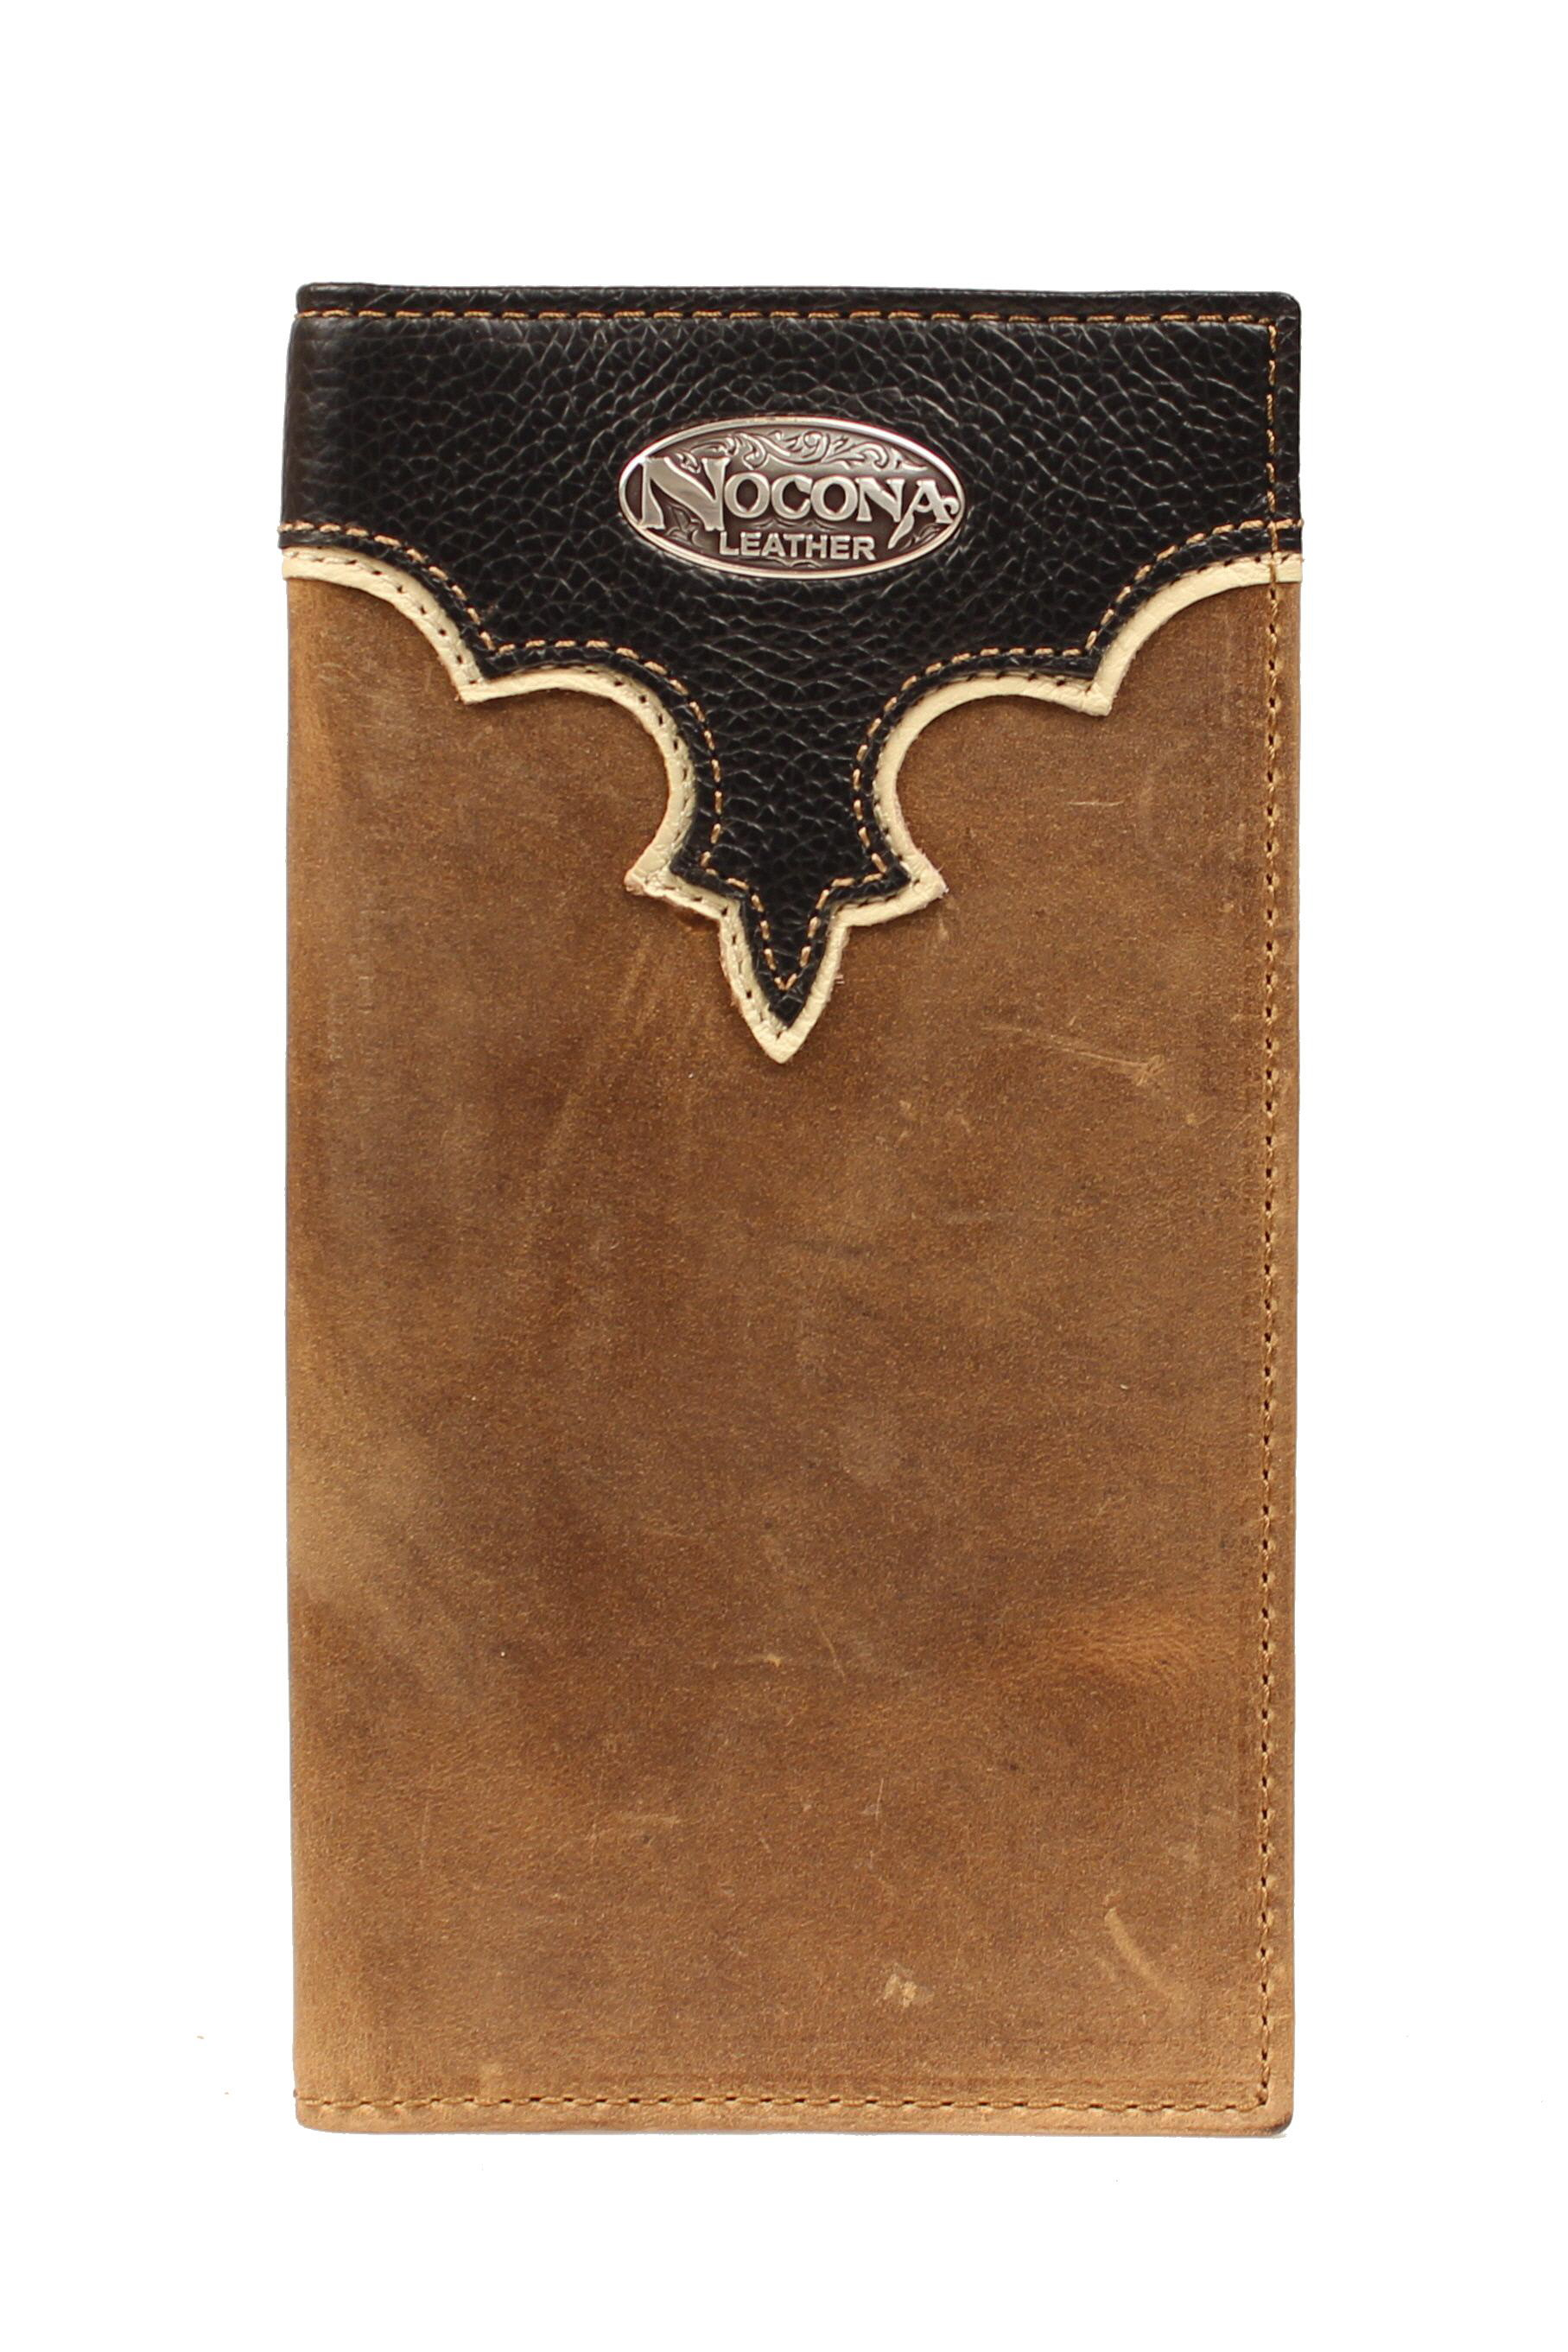 Nocona Rodeo Overlay Wallet with Logo Concho